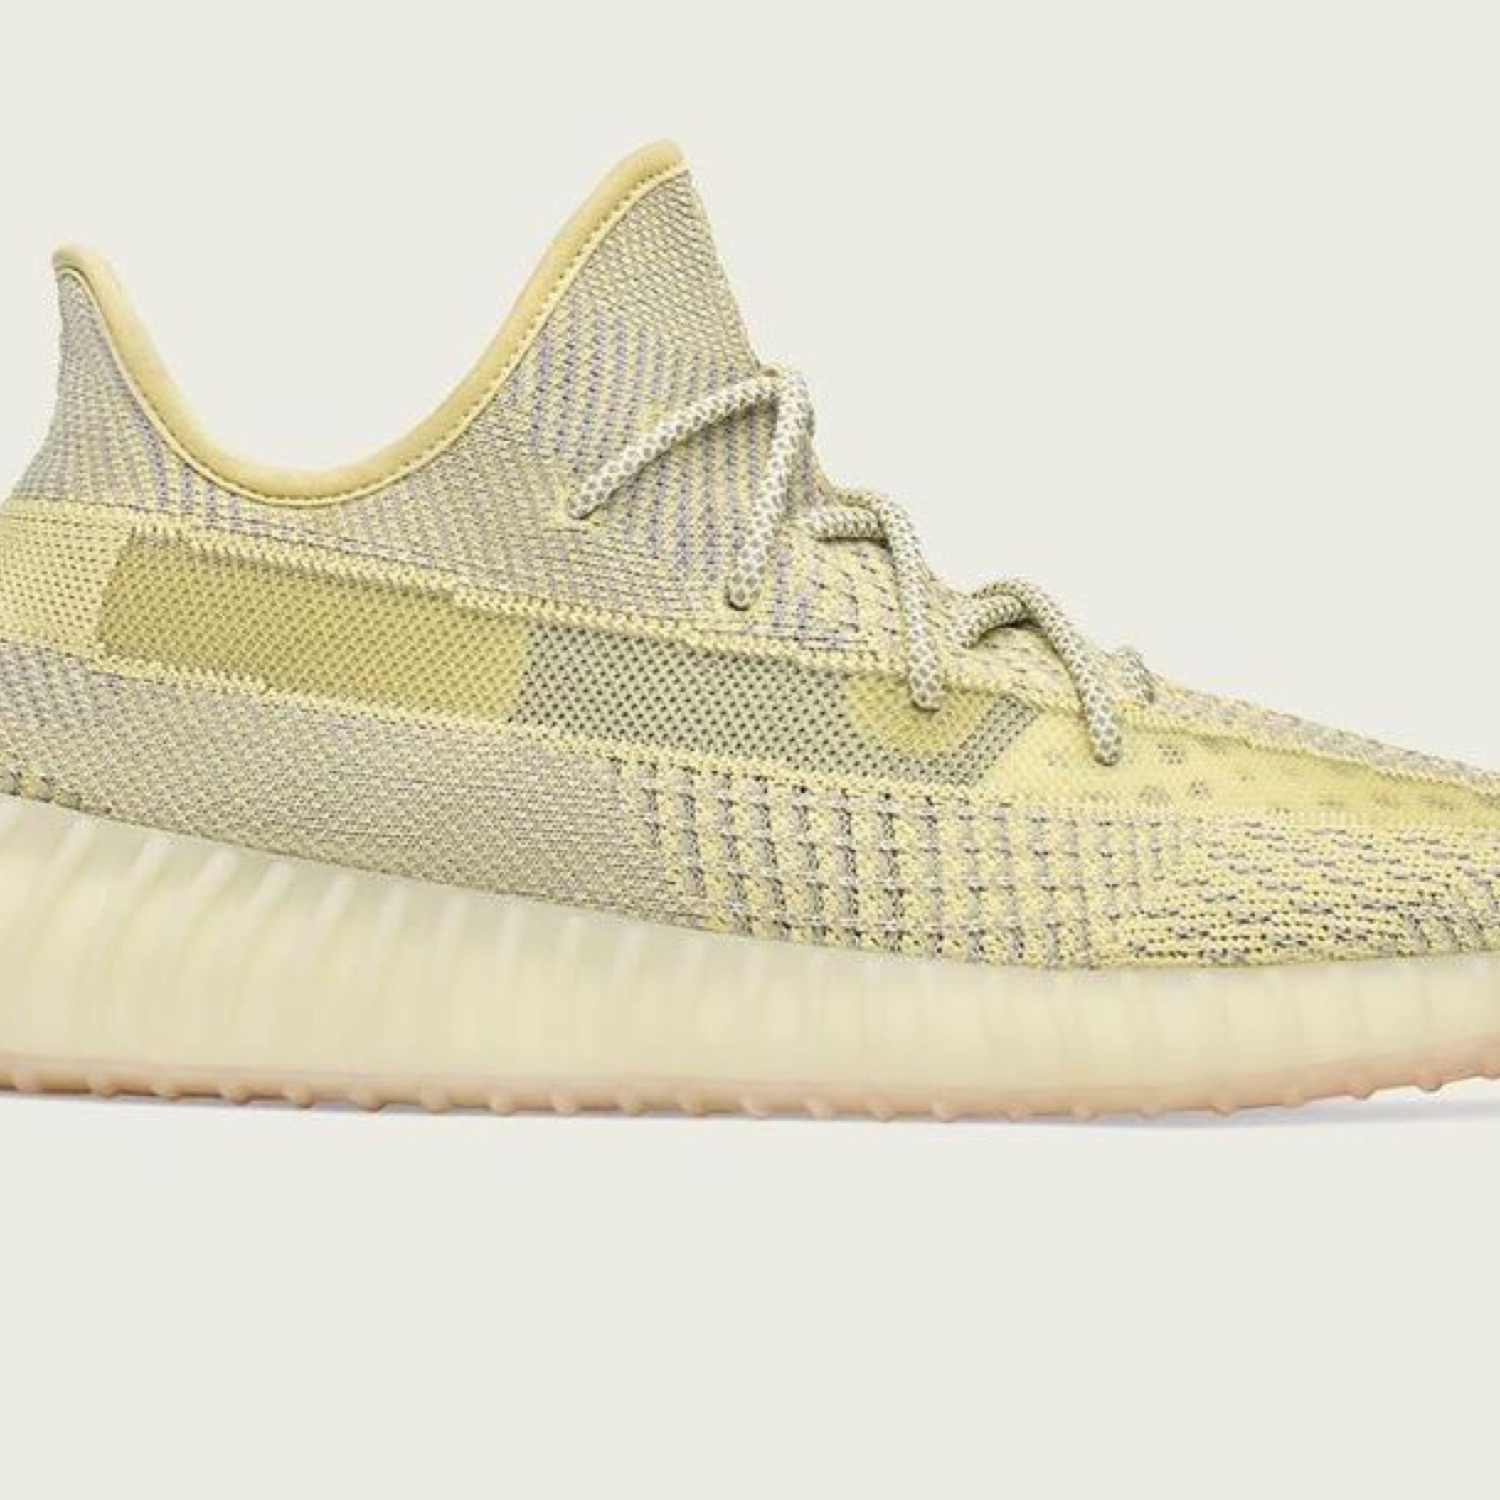 Yeezy Boost 350 V2 Antlia Us10/Eu44 Ds